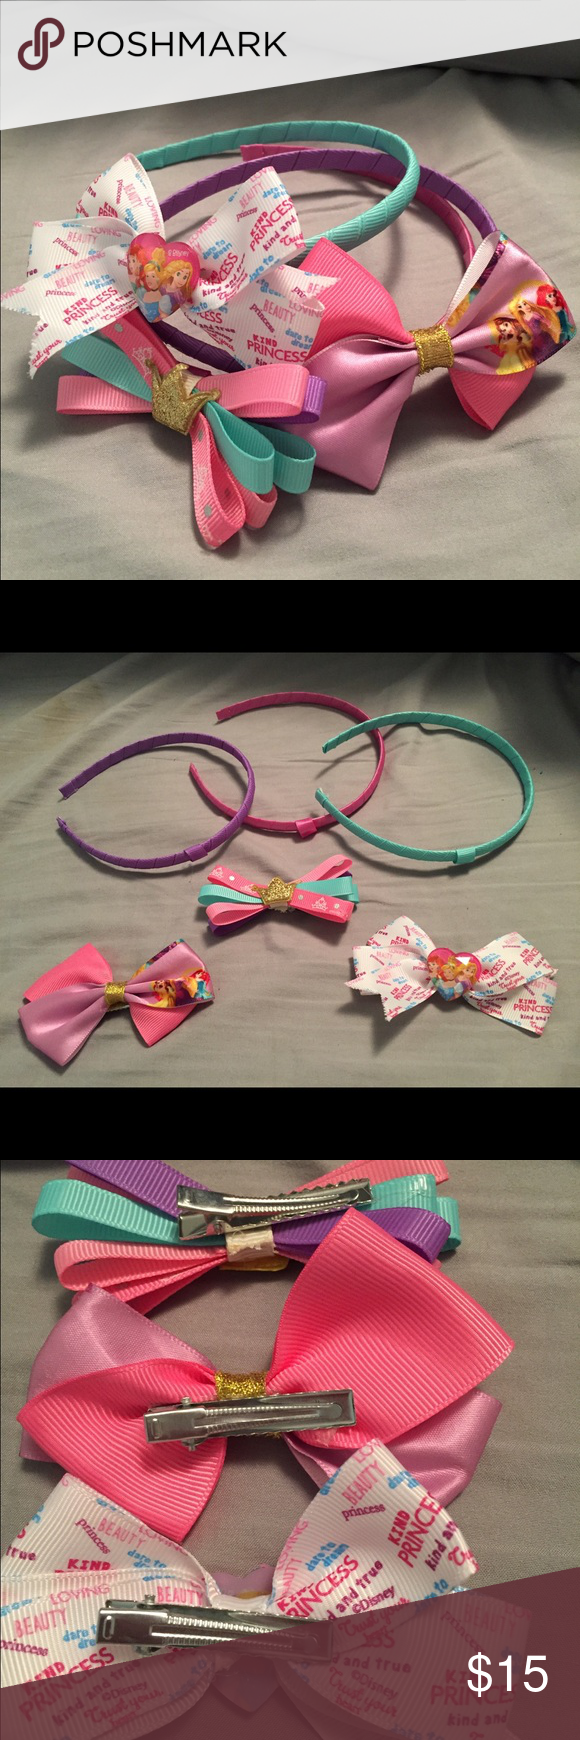 Mix & Match Disney Princess Bow Headbands Disney princess mix & match bow headbands! Disney Accessories